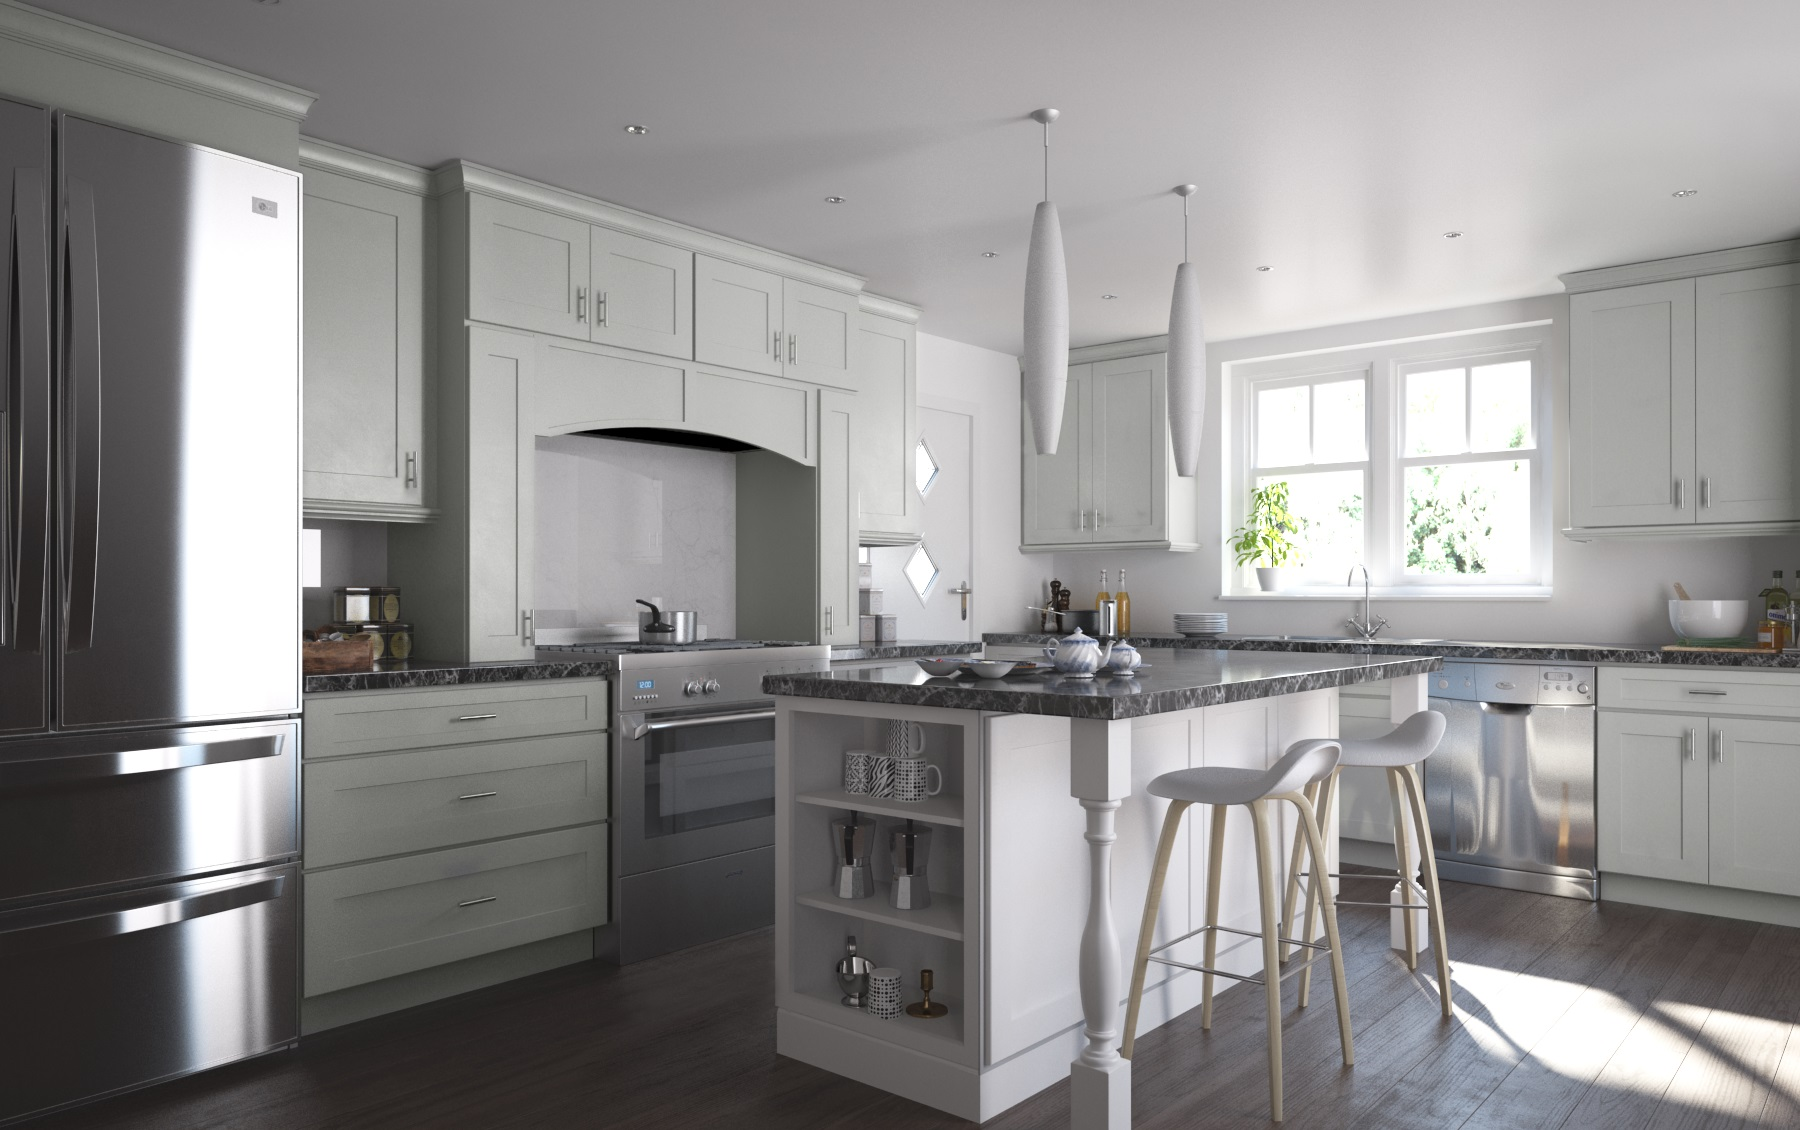 Benjamin Moore White Dove Kitchen Cabinets Society Shaker Dove Gray Kitchen Cabinets Willow Lane